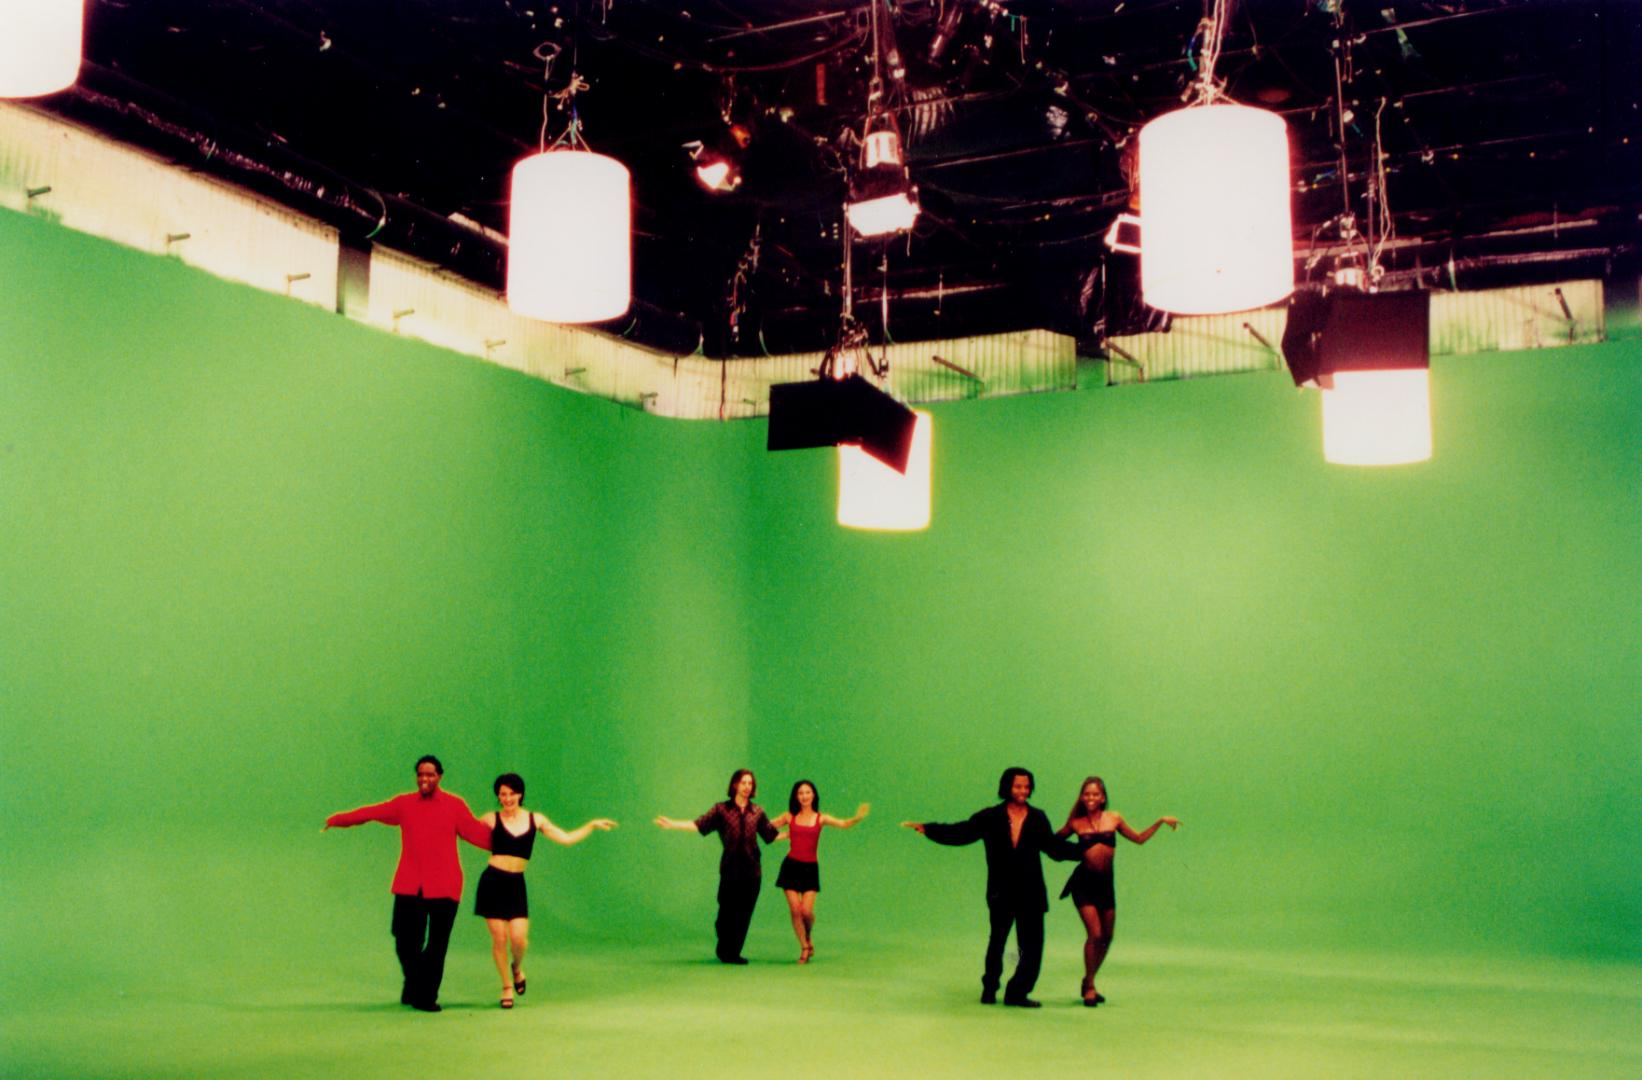 video tutorial using the green screen effect in imovie